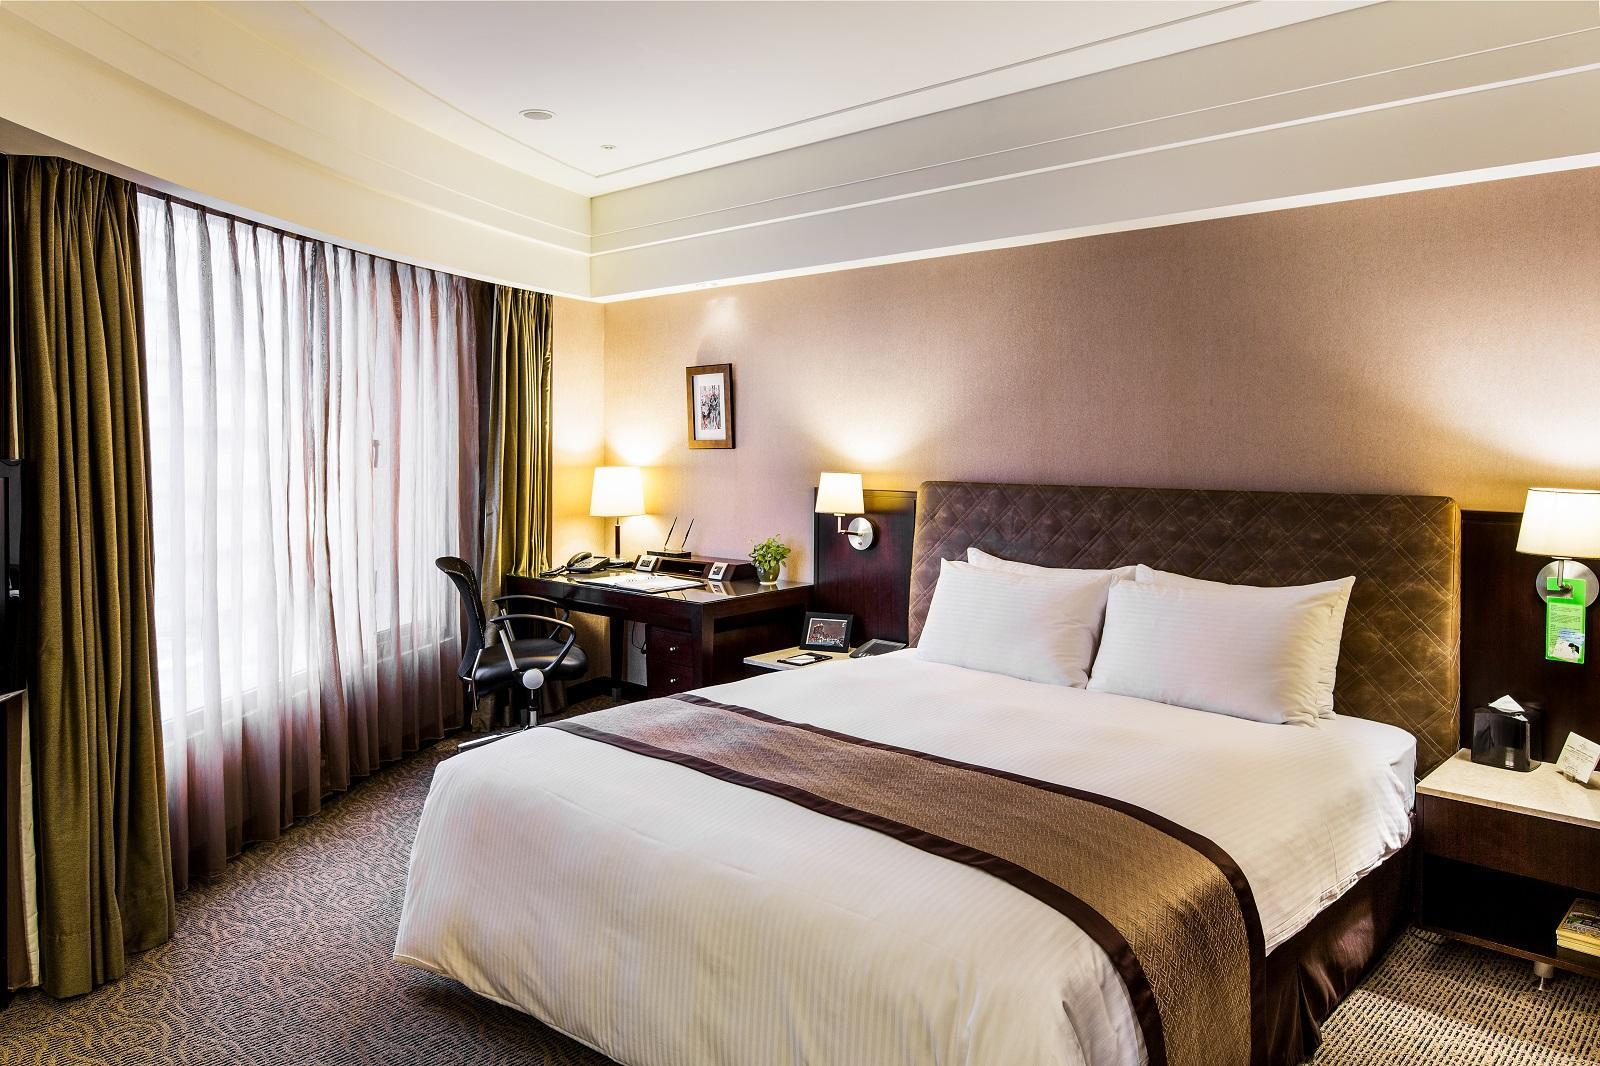 Kamar Grand Forward di Sudut (Grand Forward Corner Room)